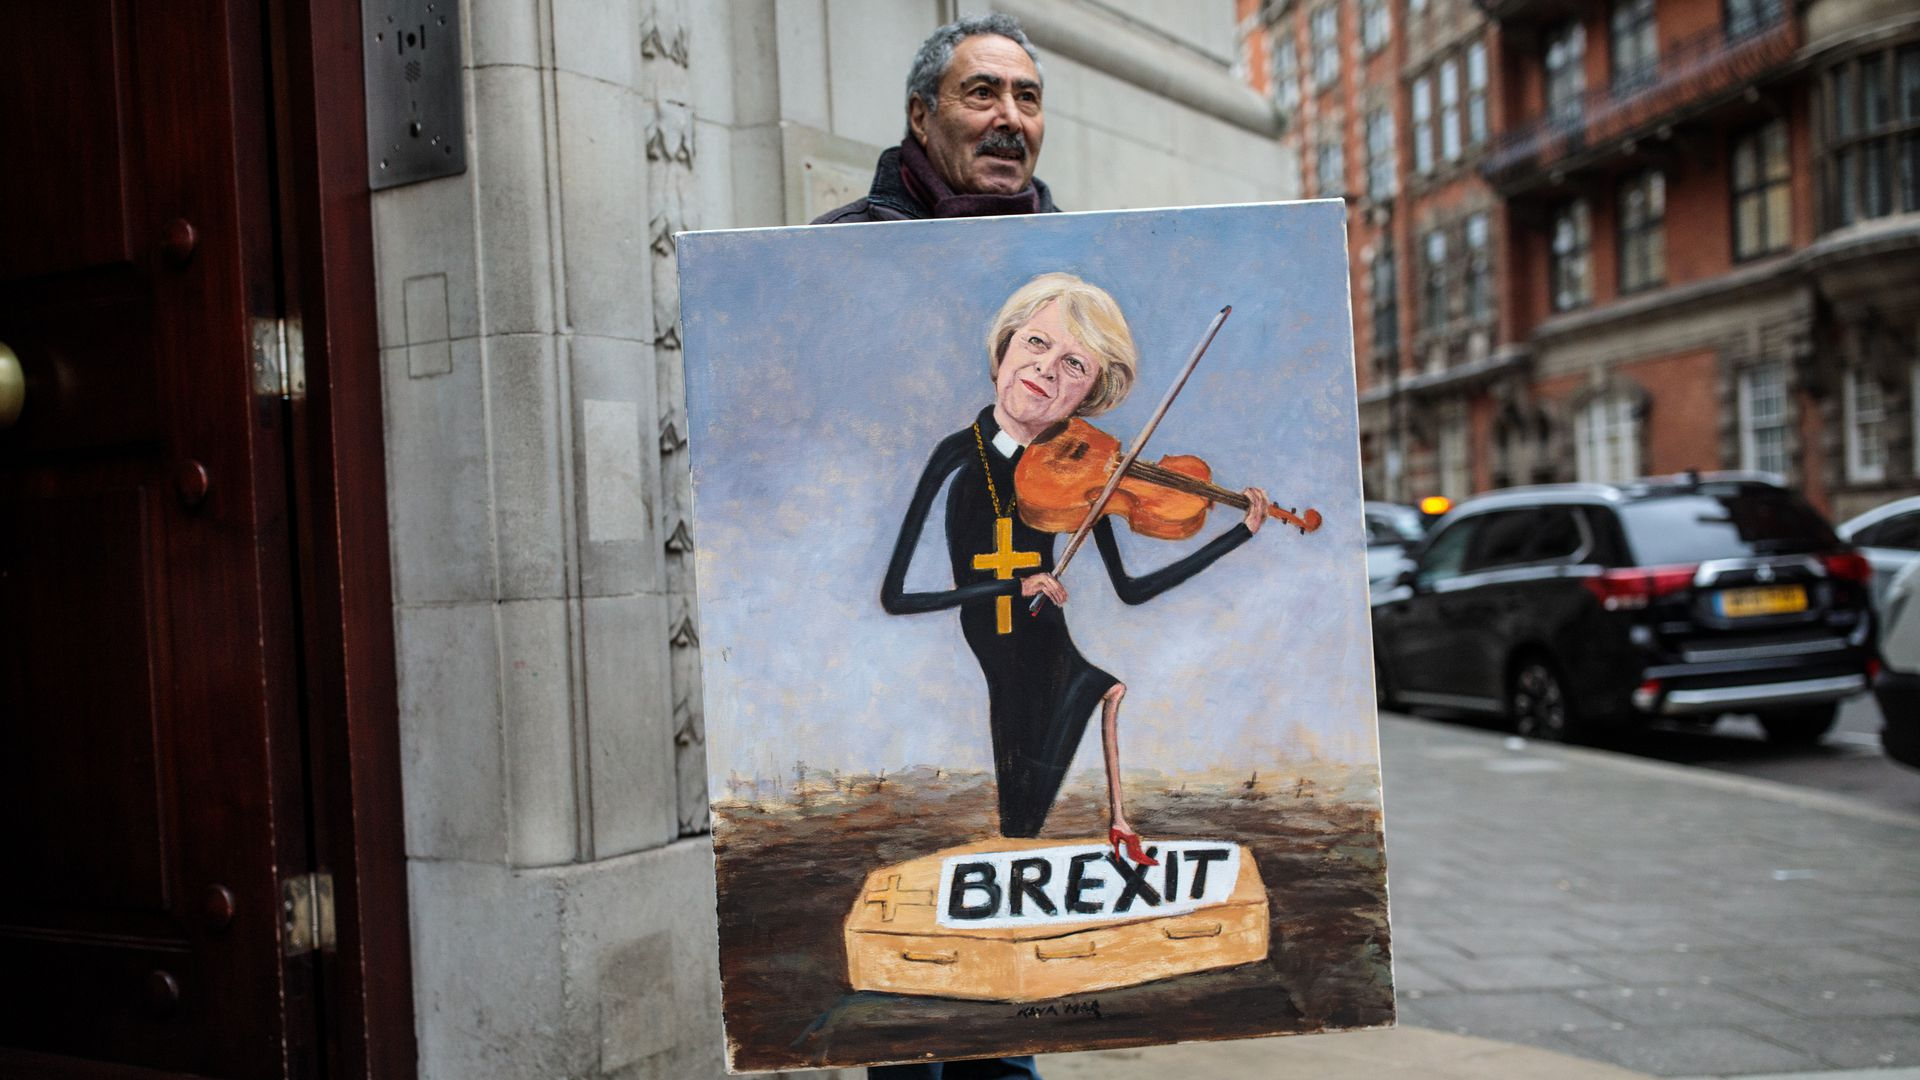 Political artist Kaya Mar stands with his painting depicting Prime Minister Theresa May playing a violin outside Millbank Studios in Westminster on January 16, 2019 in London, England.